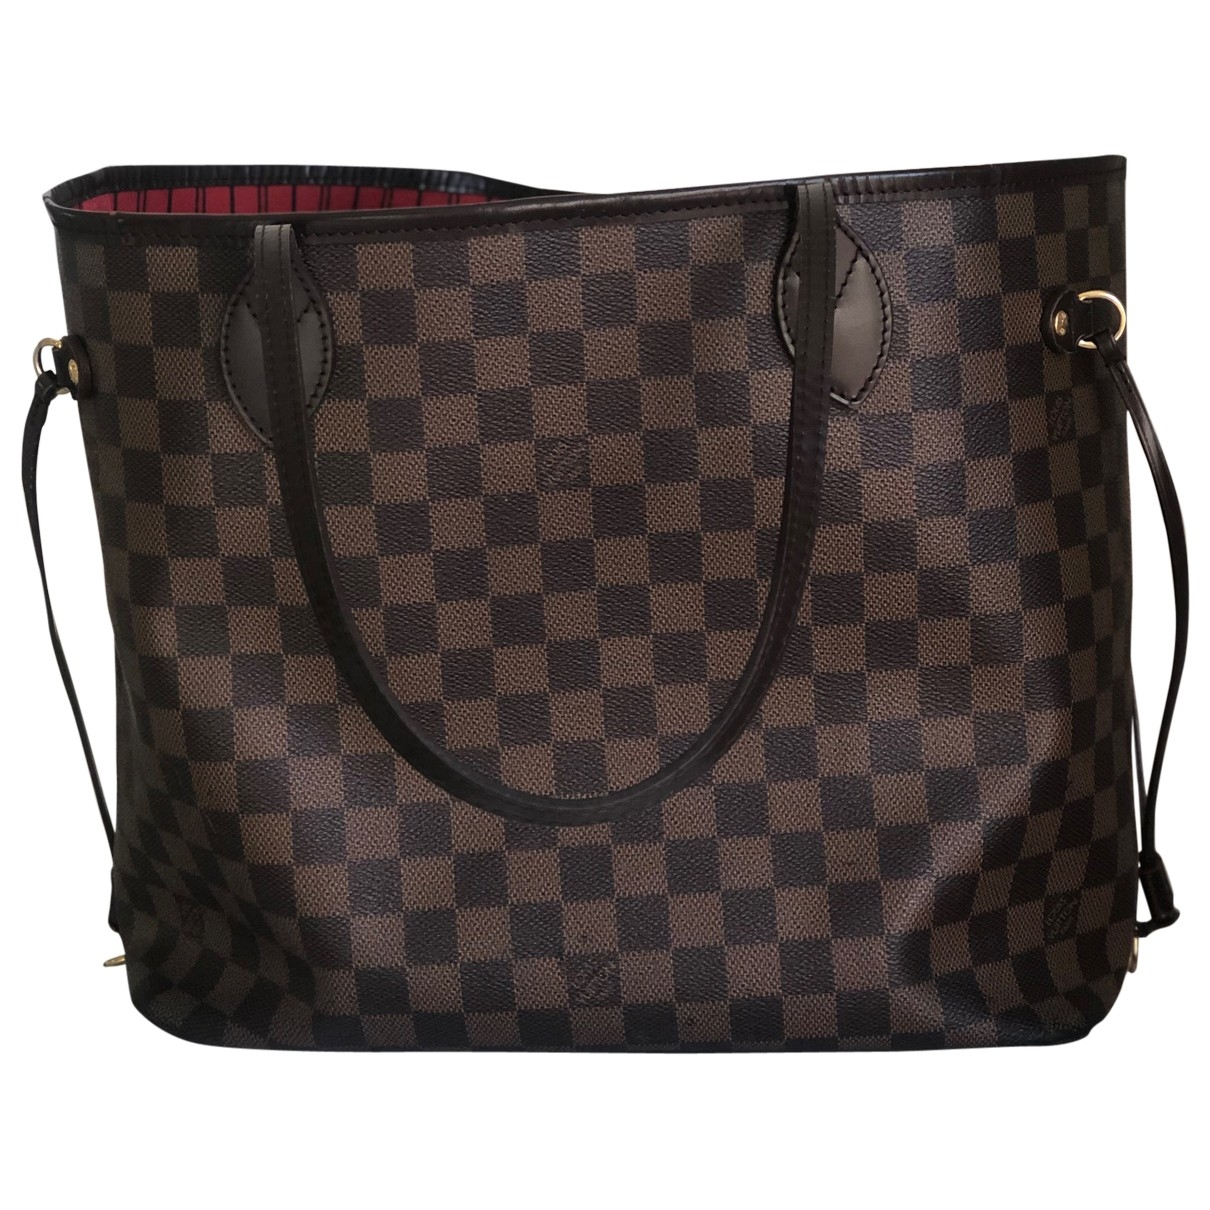 Louis Vuitton - Sac a main Neverfull pour femme en toile - marron